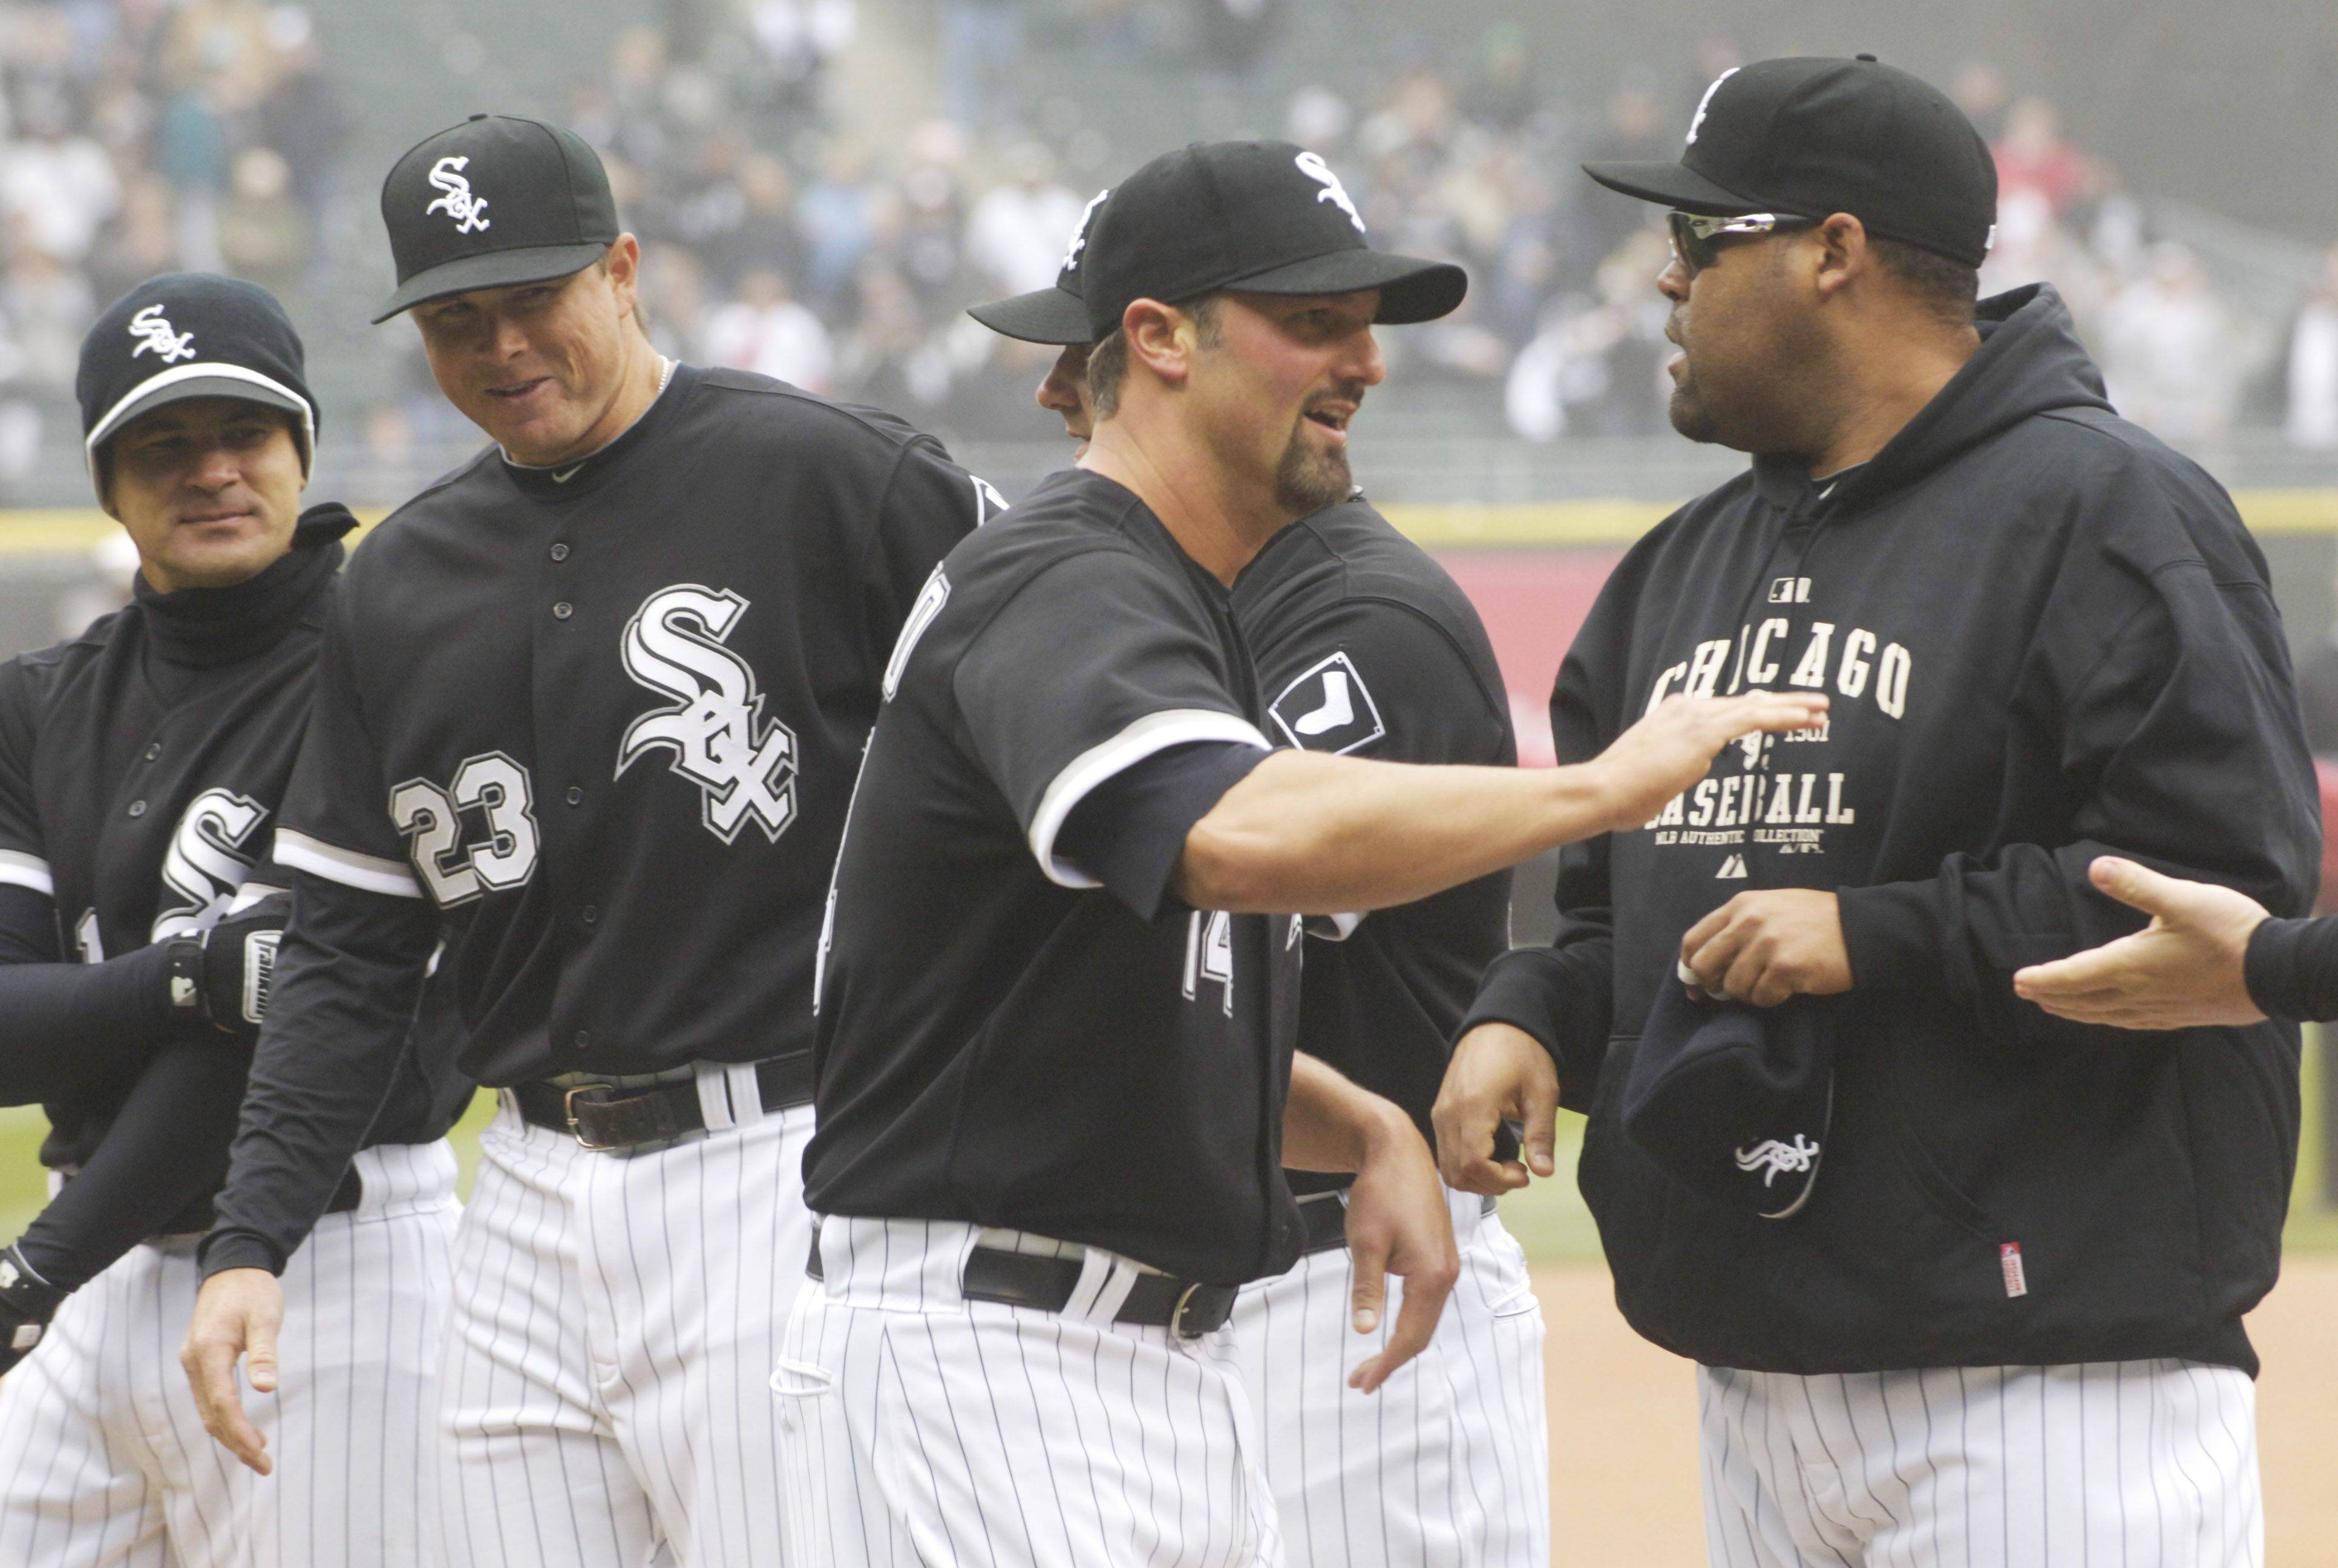 Crowd erupts for Konerko